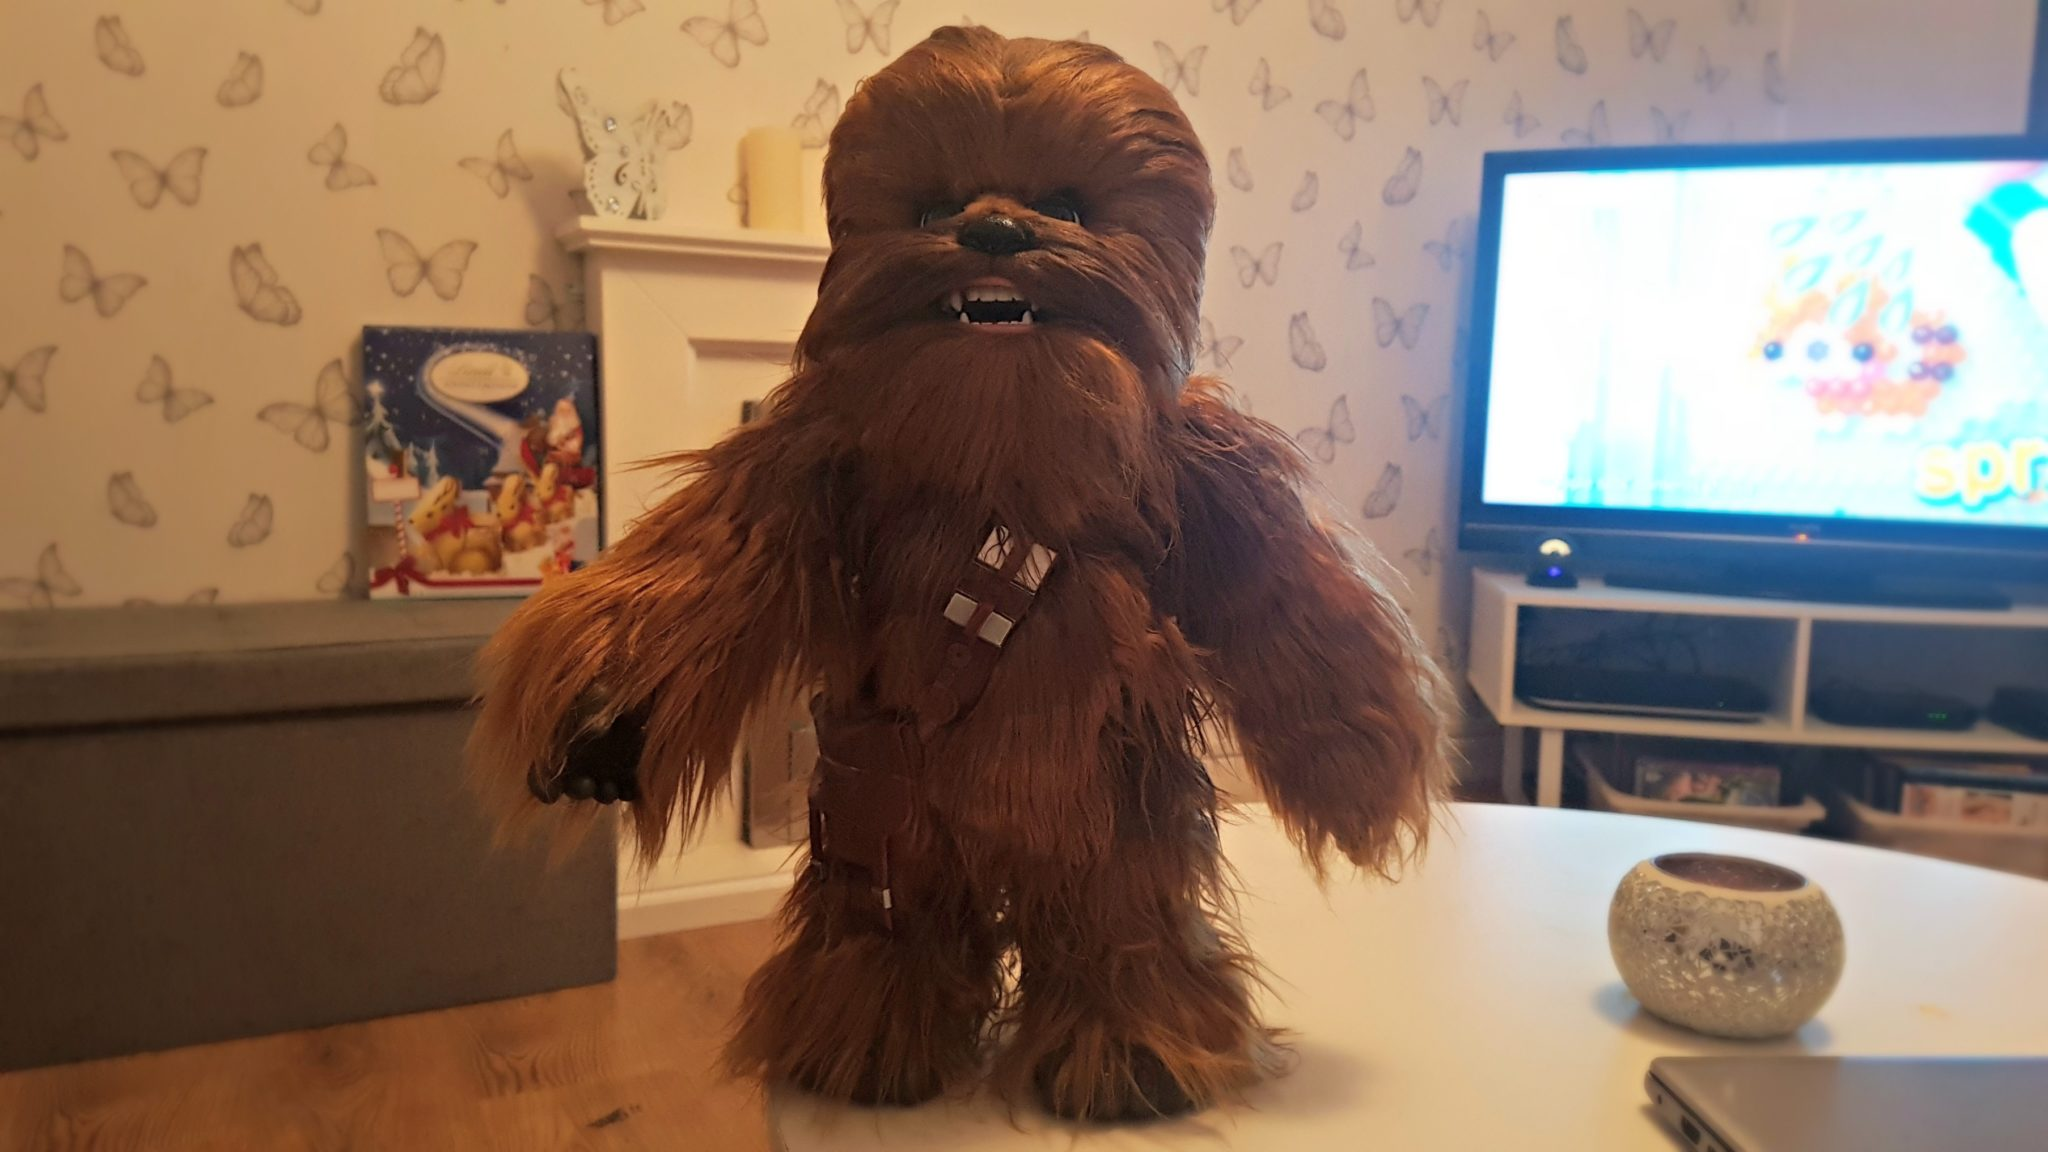 image of co-pilot chewie standing on a white table with a tv in the background